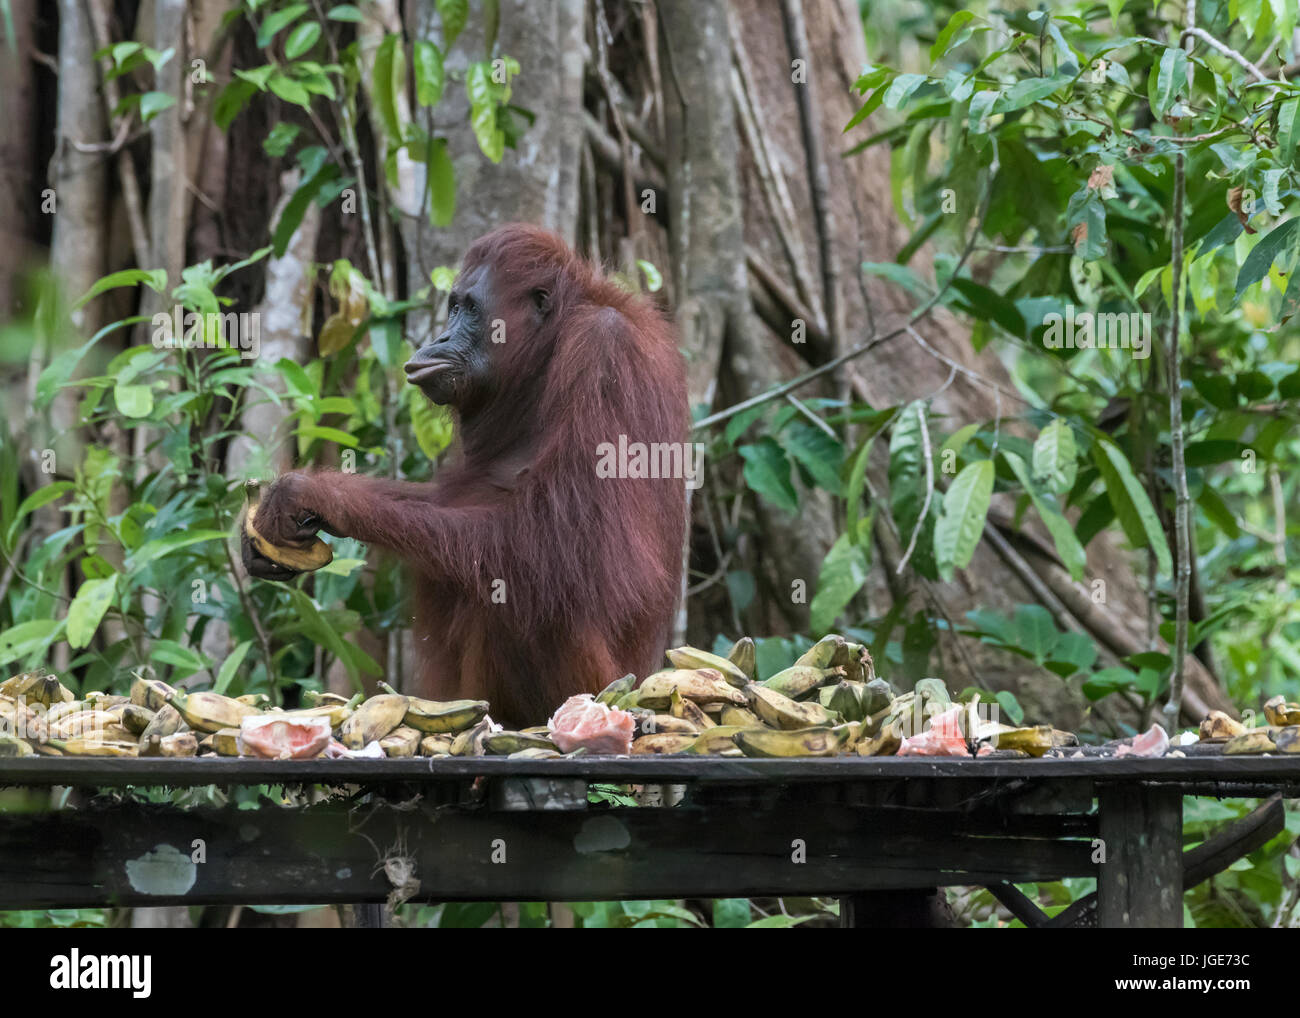 Adolescent orangutan at a feeding station, Tanjung Puting NP, Indonesia - Stock Image